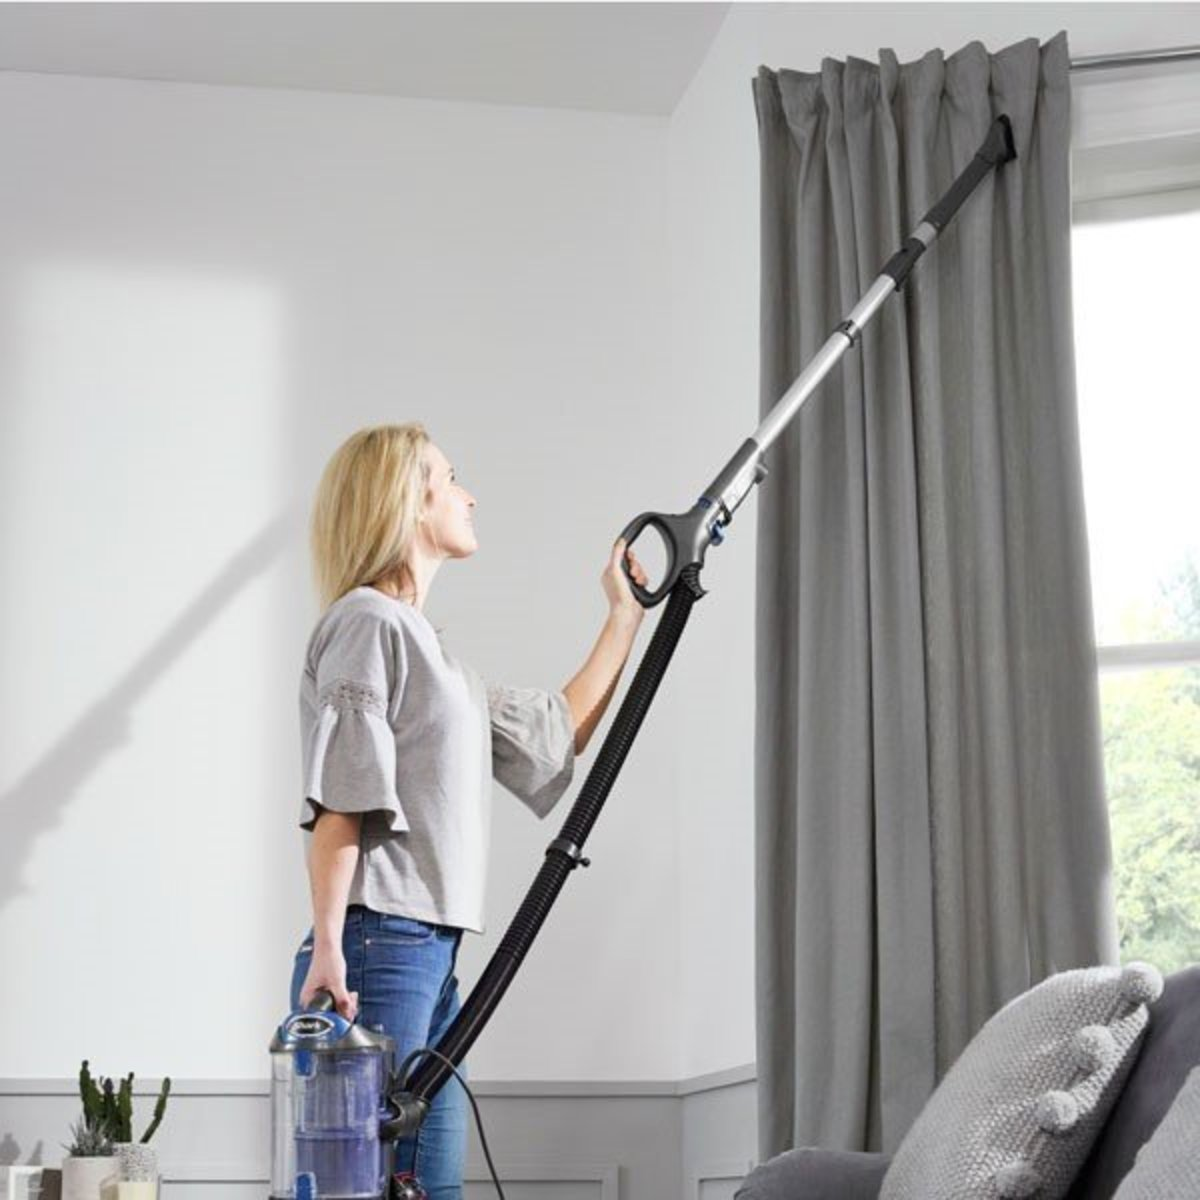 It's best to vacuum your curtains to remove the dust that has accumulated over the winter.